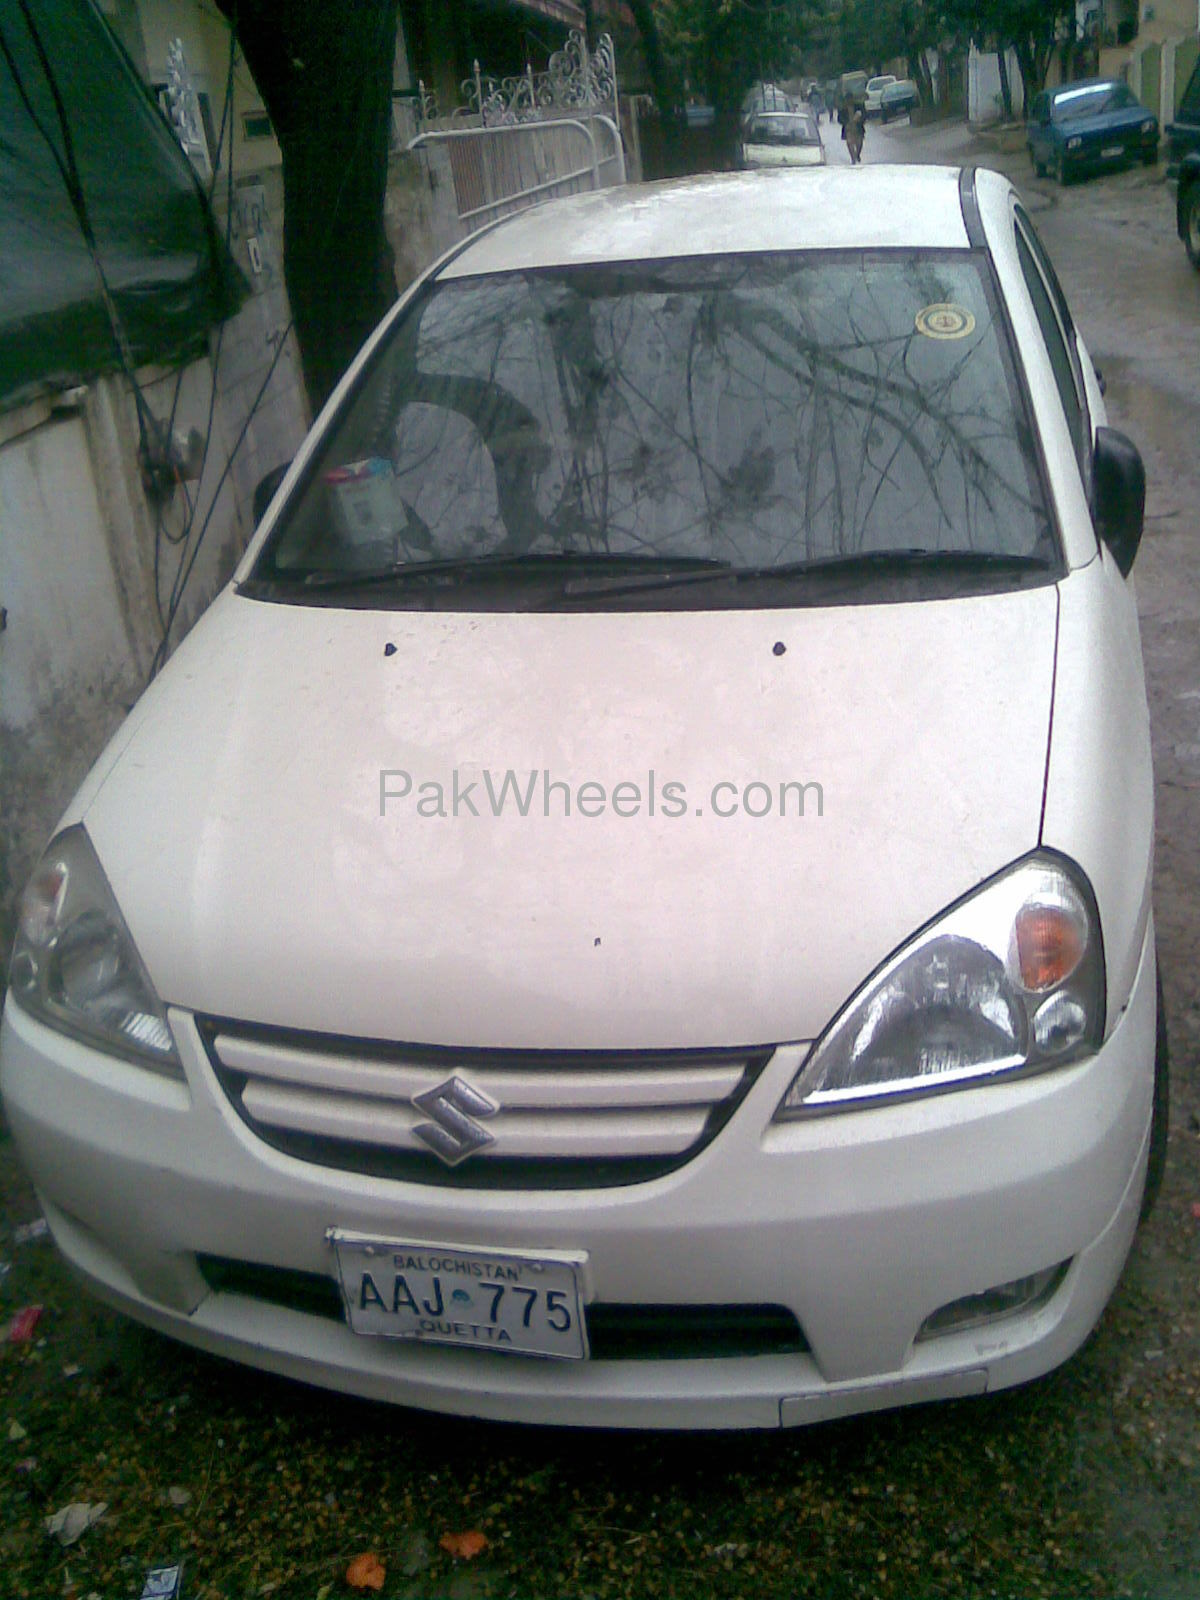 suzuki liana rxi cng 2007 for sale in islamabad pakwheels. Black Bedroom Furniture Sets. Home Design Ideas